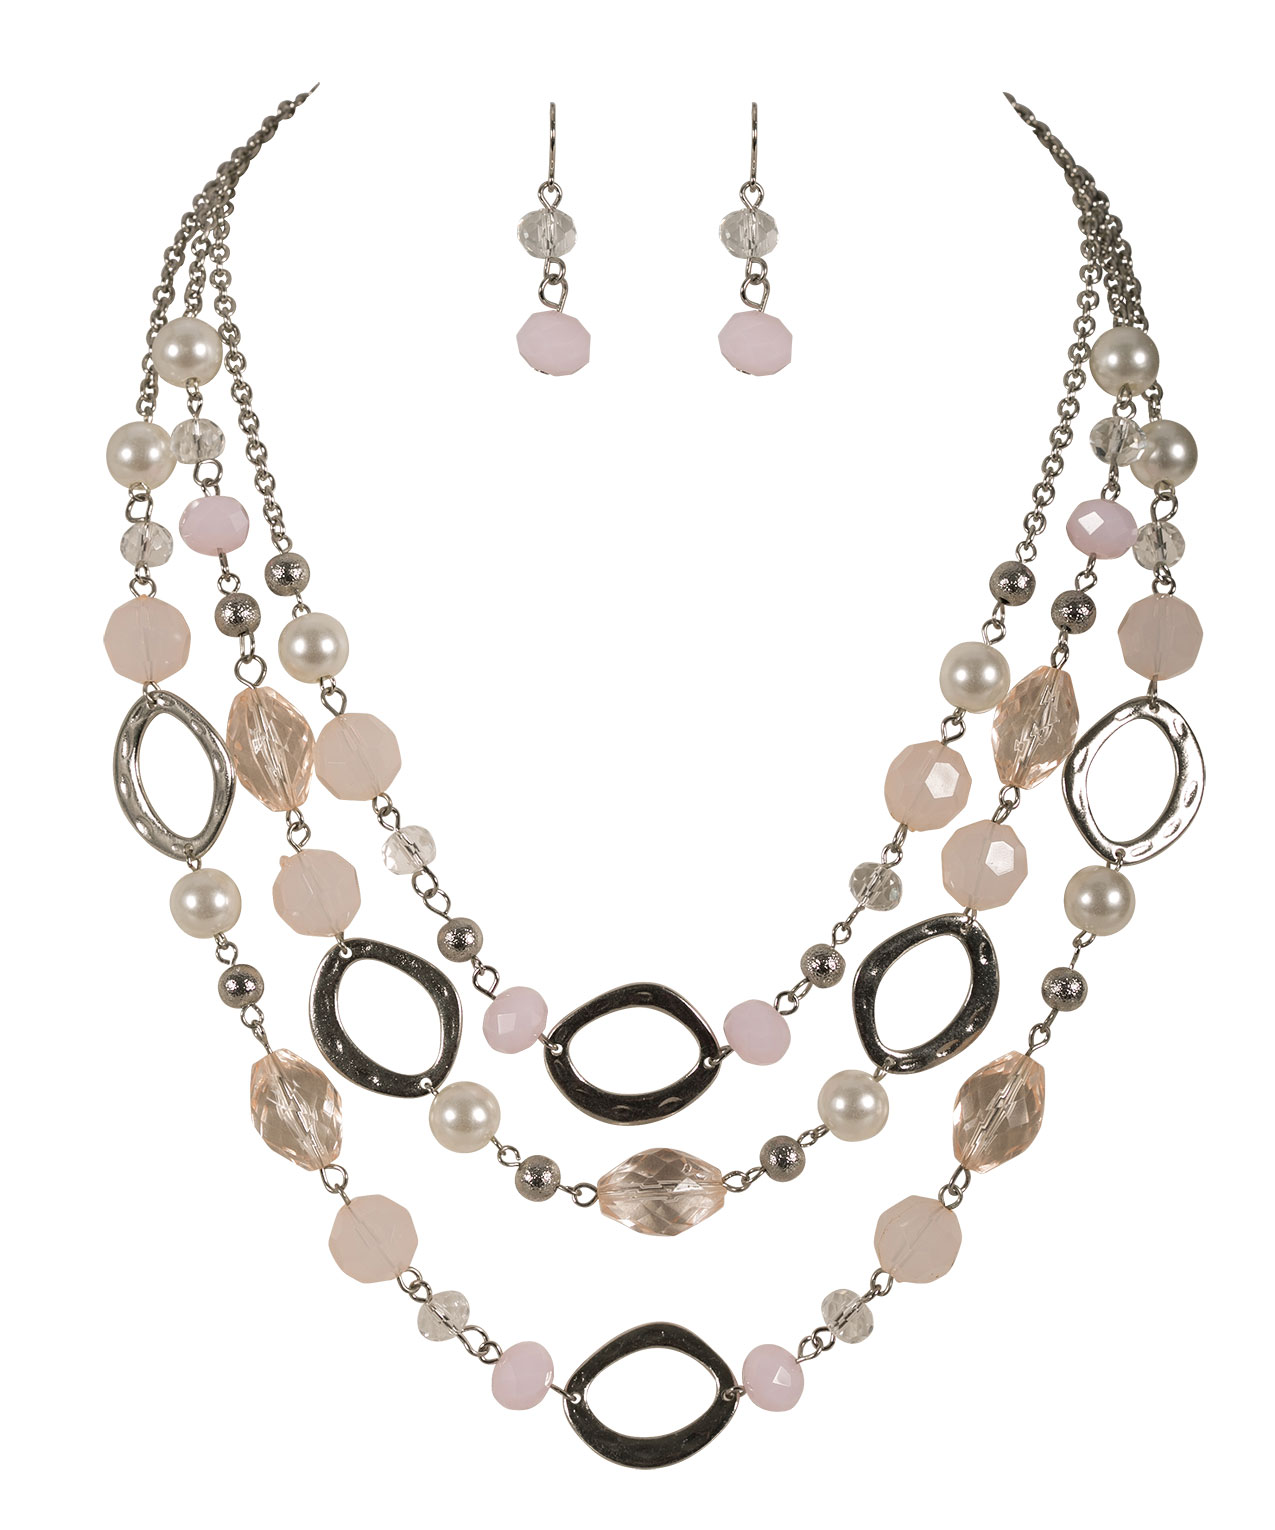 sterling hot in collection pendant necklace midi pink d silver sml vaults moonstruck product design